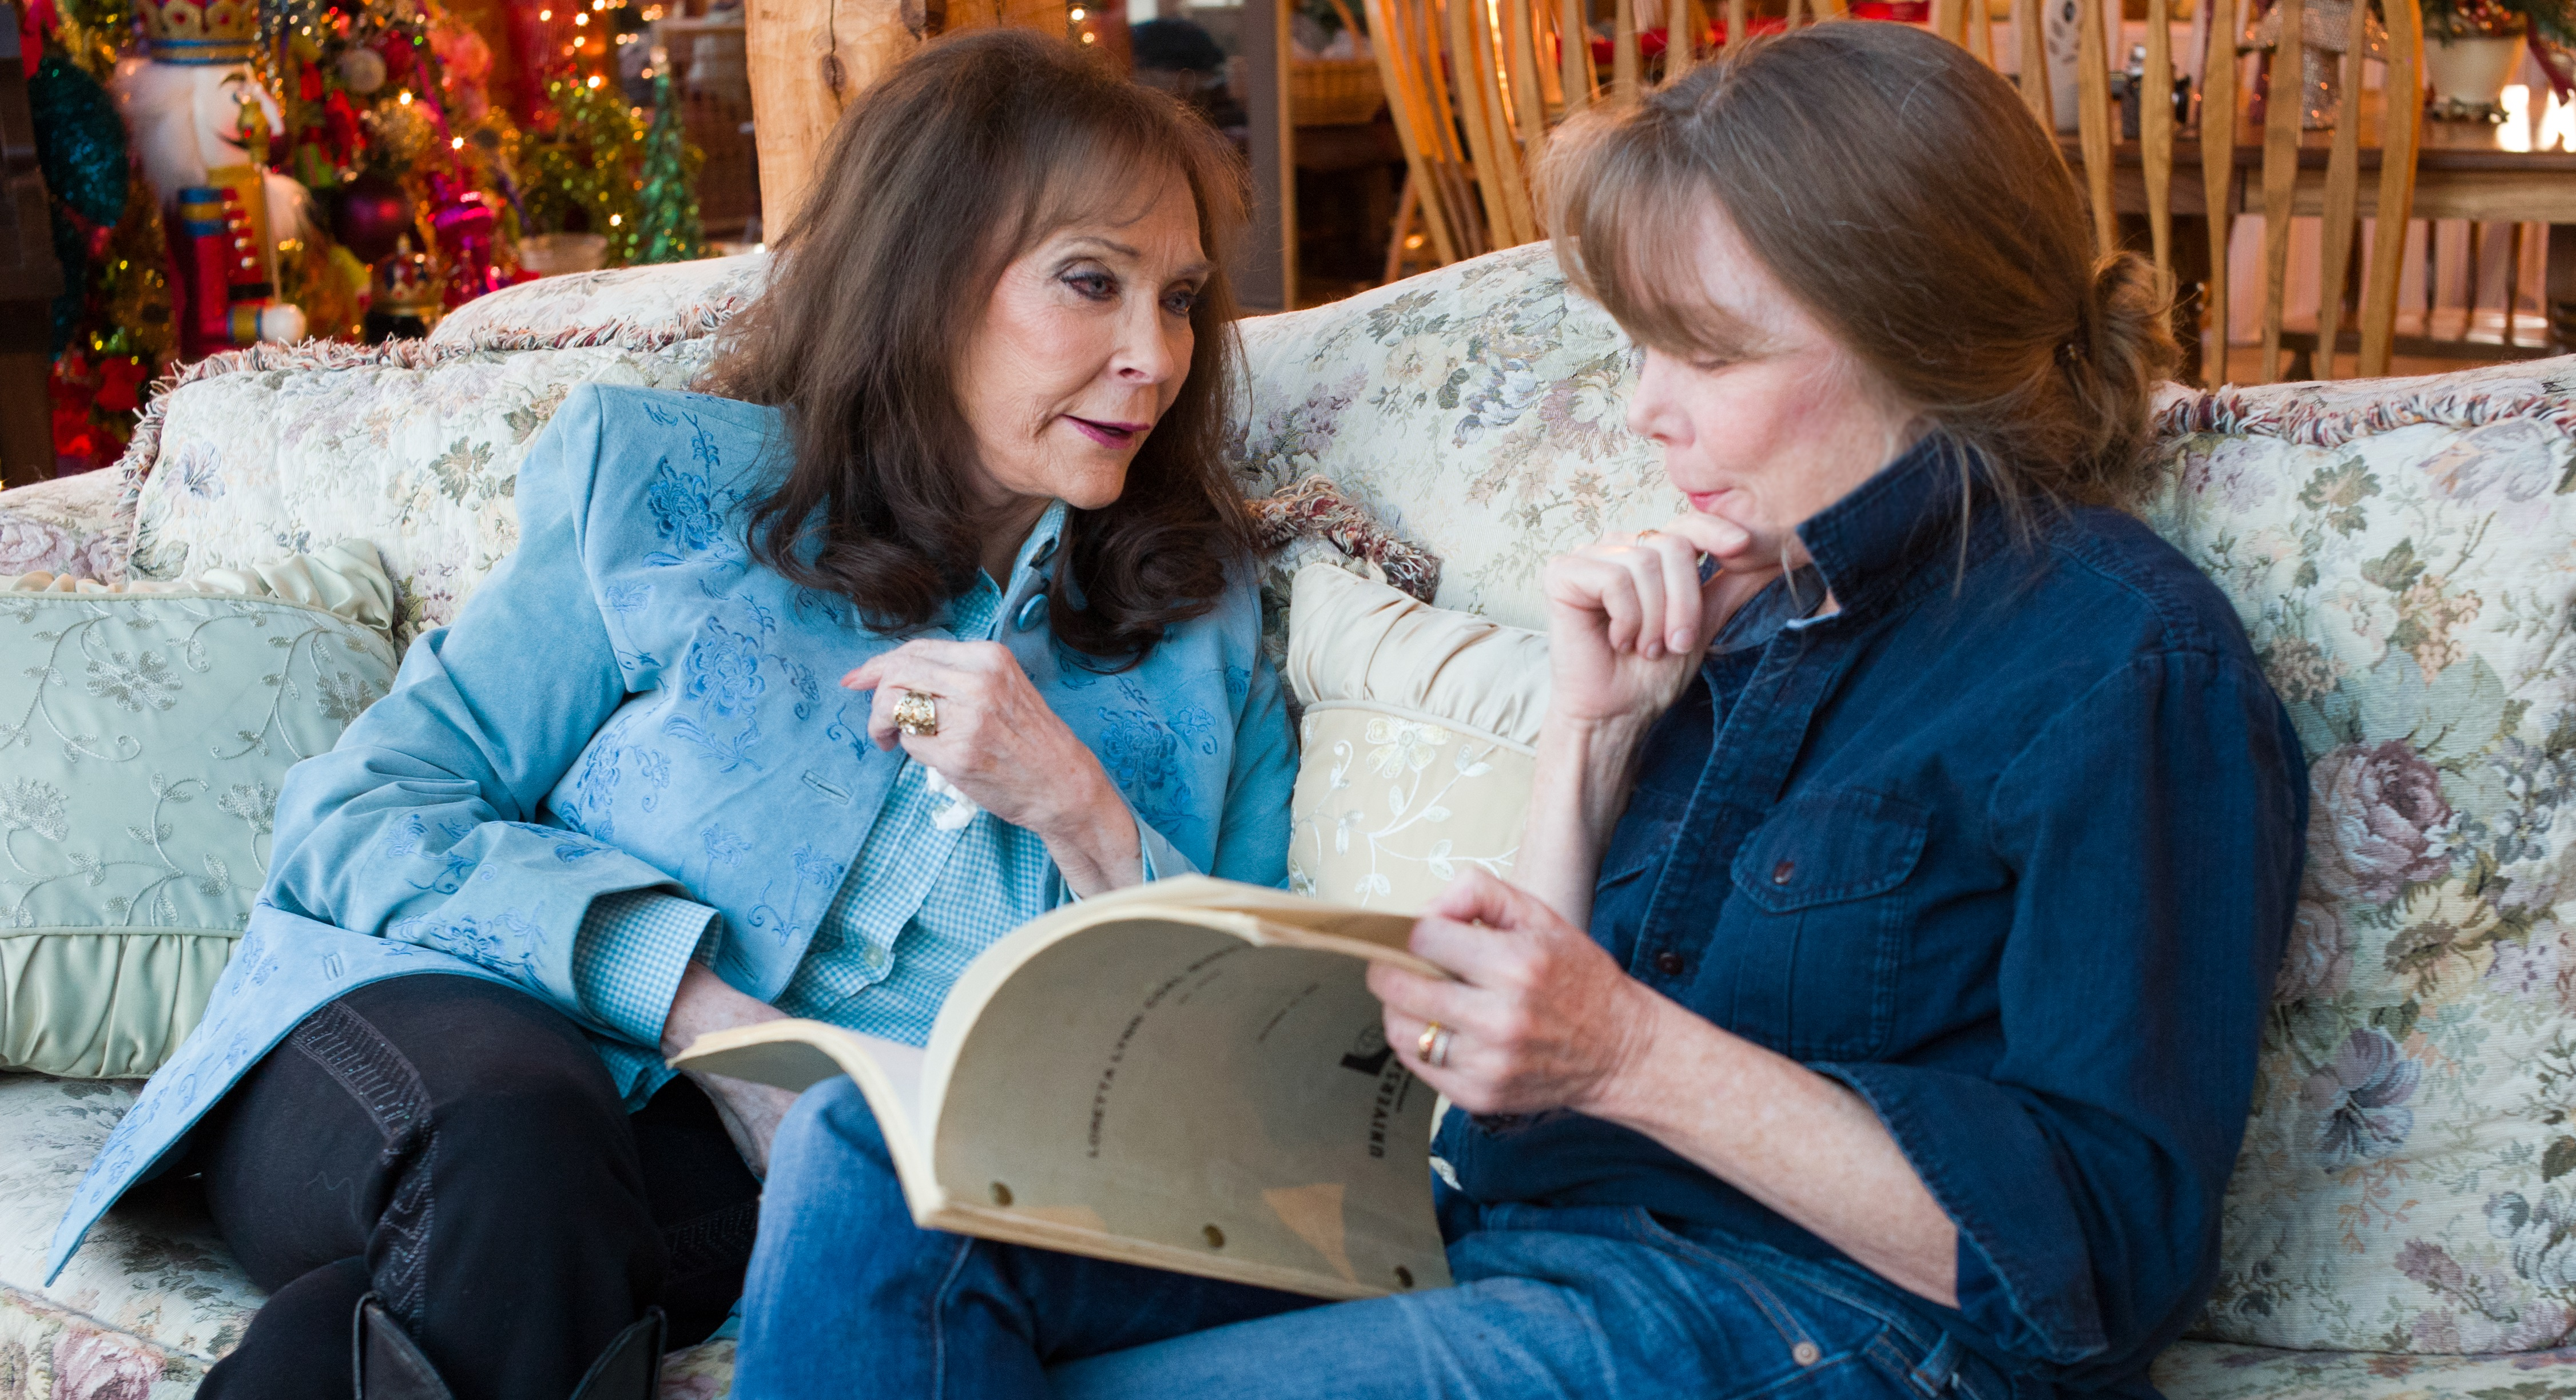 THIRTEEN's American Masters Presents the World Premiere of the New Documentary Loretta Lynn: Still a Mountain Girl, March 4 on PBS